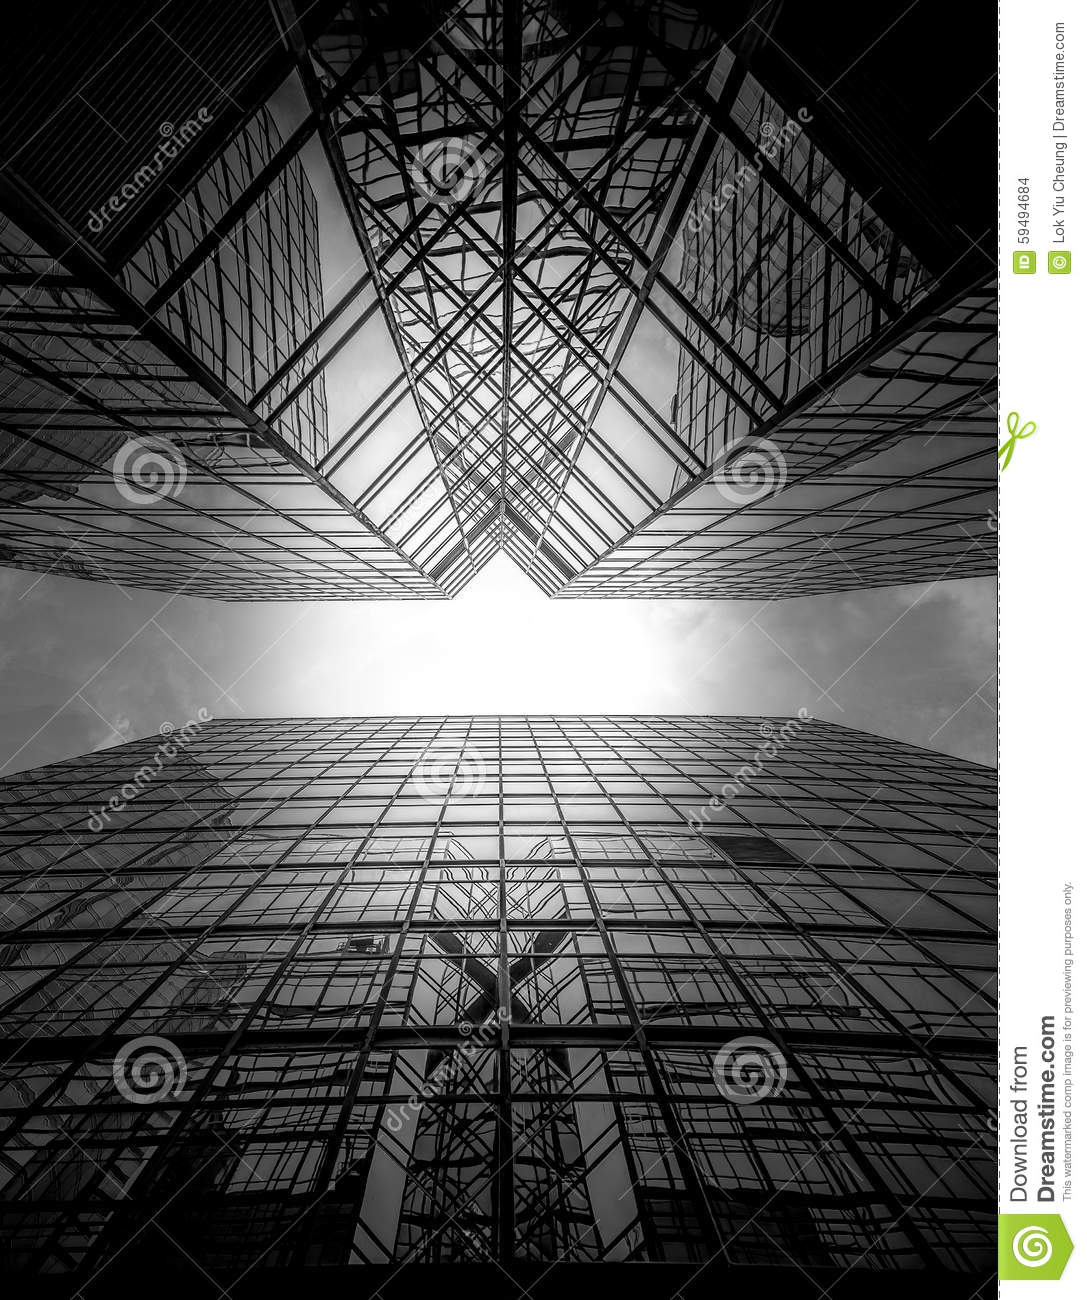 hong kong modern architecture black and white stock photo - image of